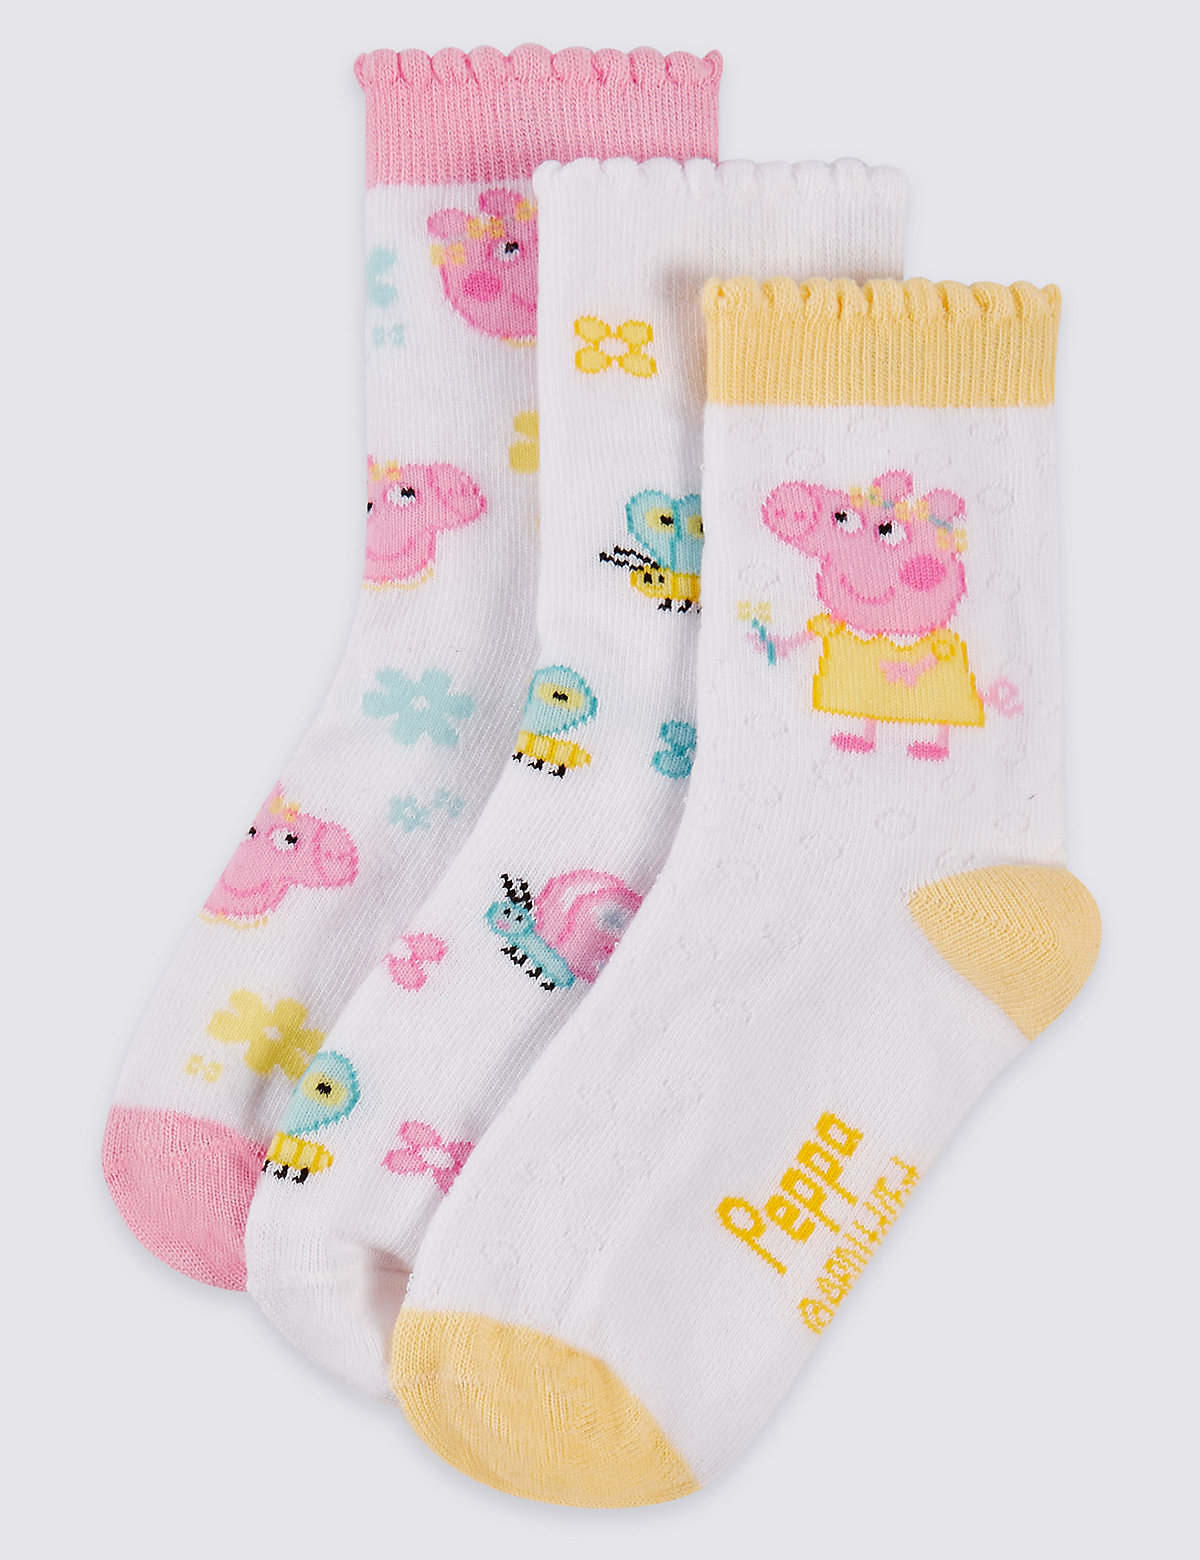 3 Pairs of Peppa Pig Socks (16 Years)